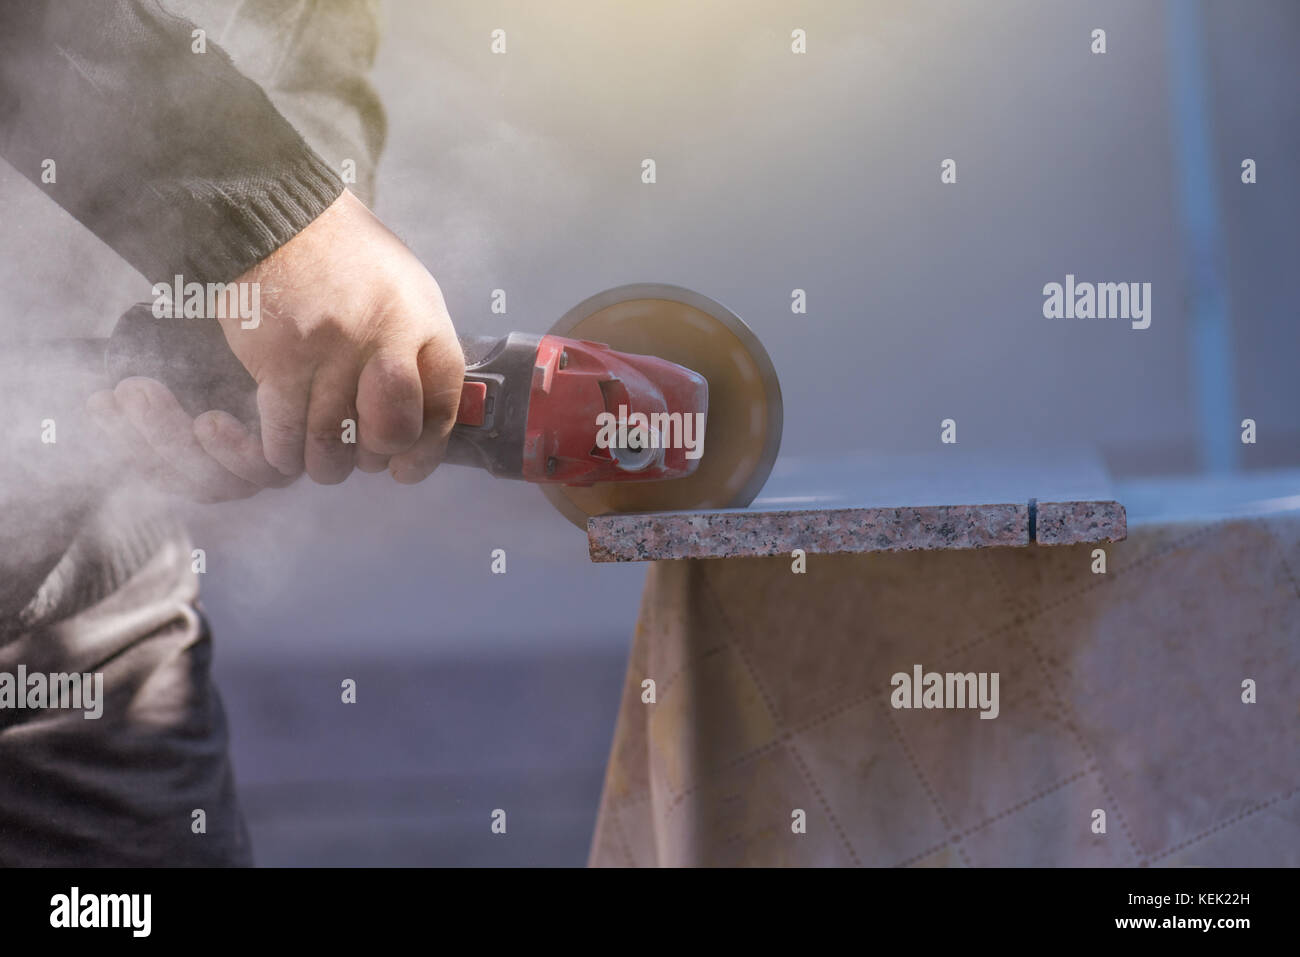 Electric tile cutter stock photos electric tile cutter stock grinder worker cuts stone block with electric hand saw stock image dailygadgetfo Image collections